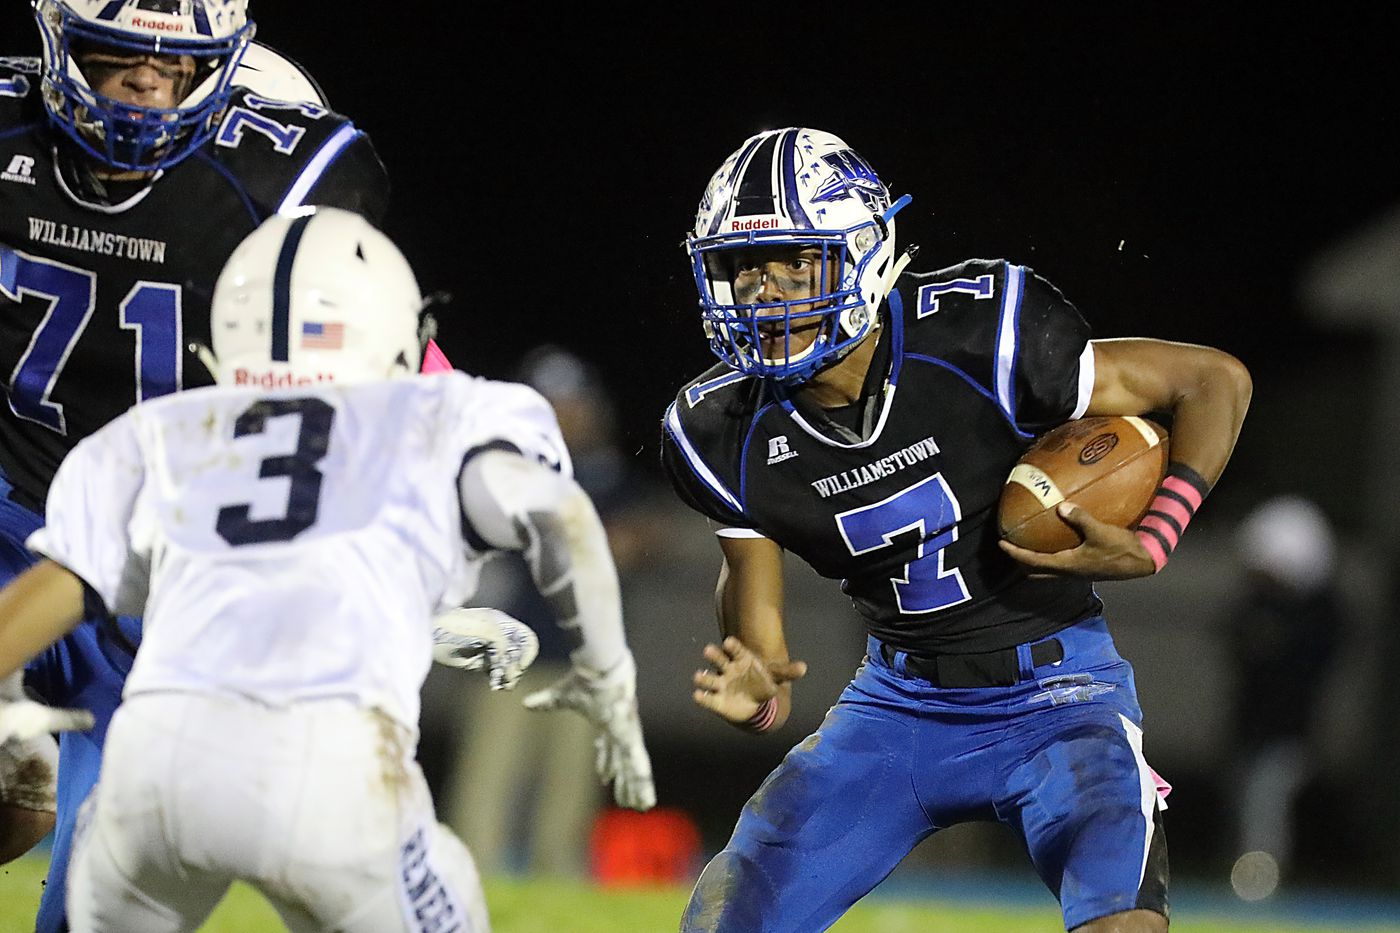 No. 3 St. Augustine at No. 2 Williamstown among games to watch this weekend